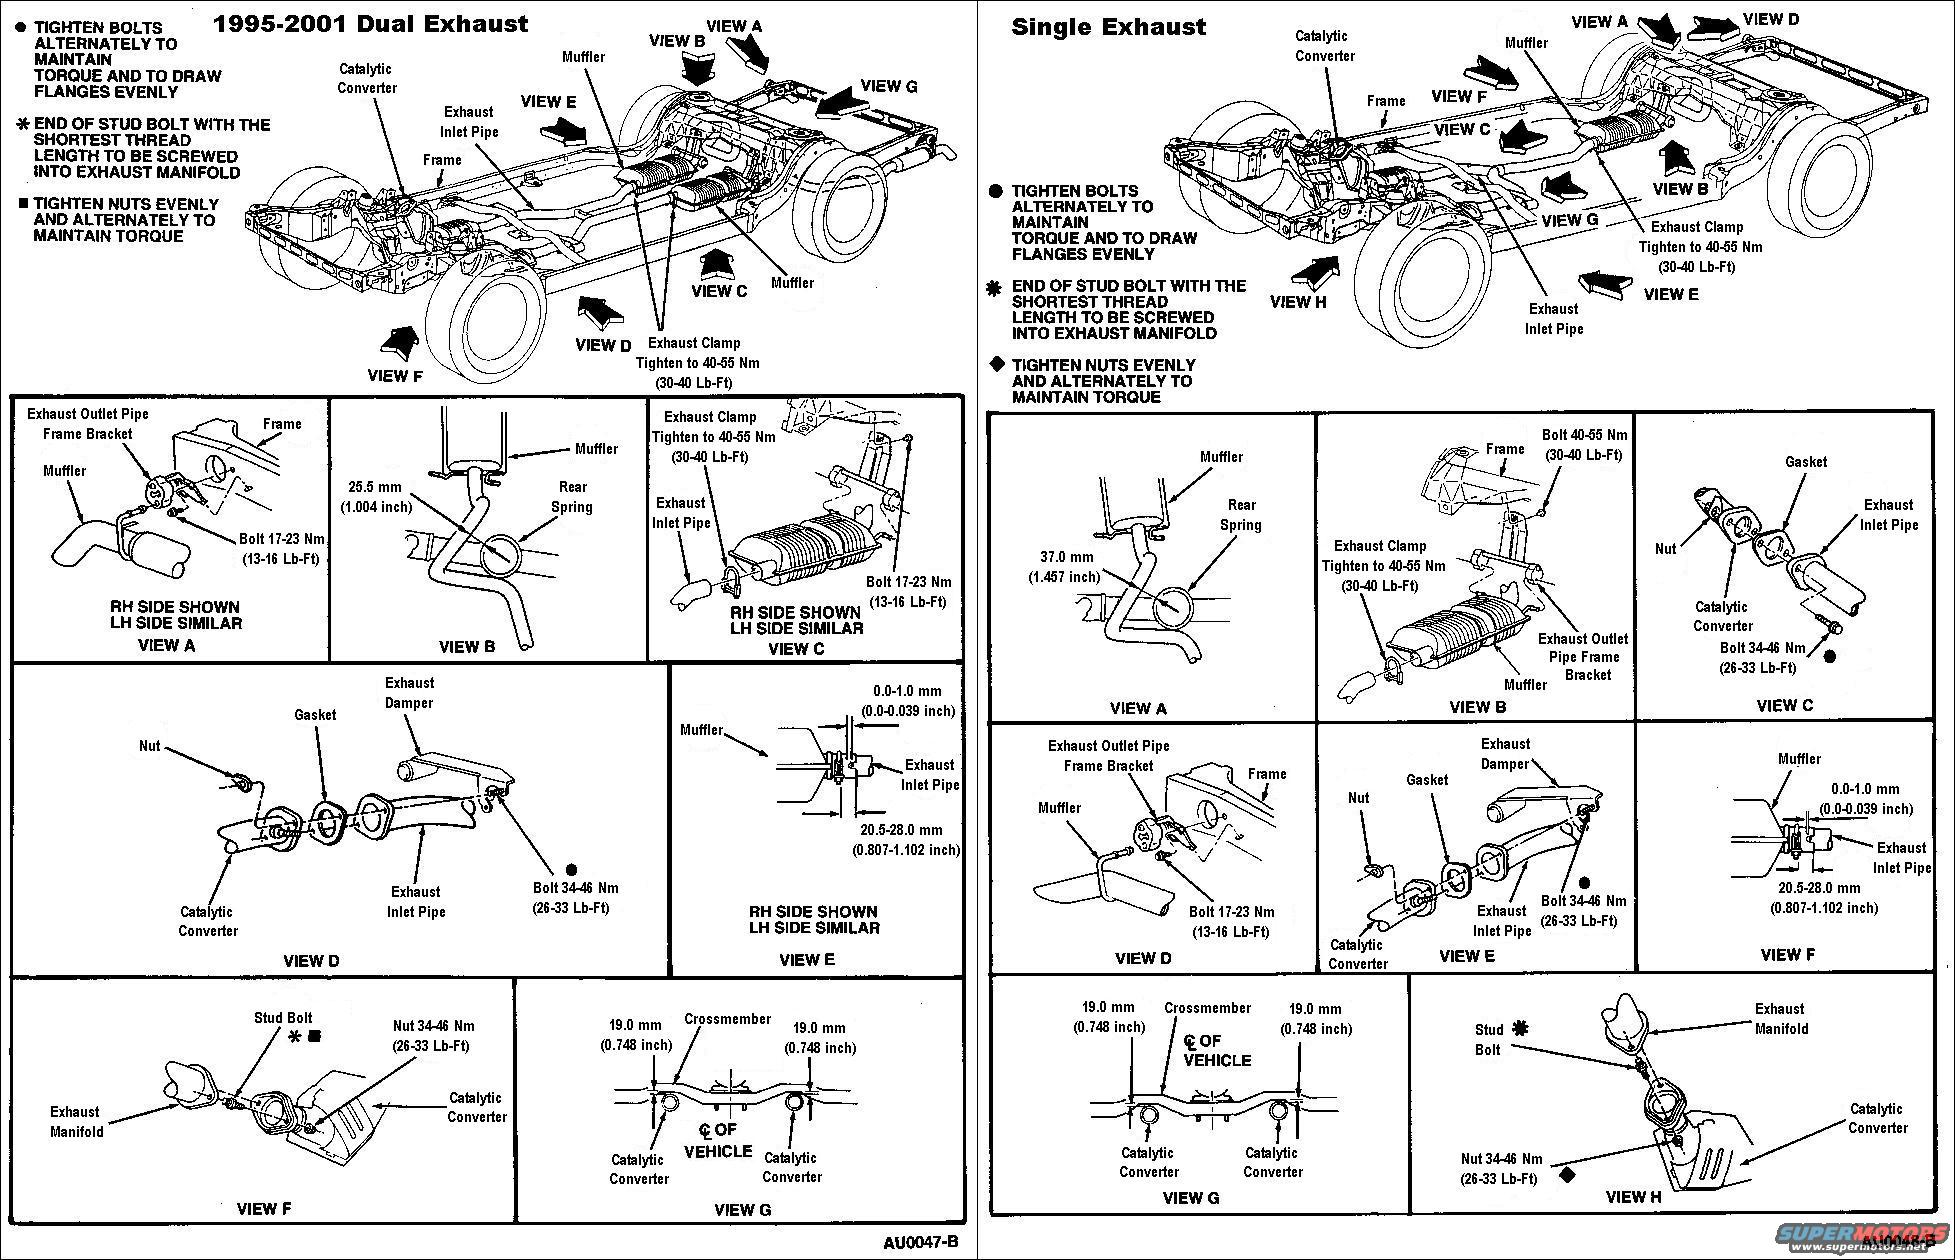 1994 Ford Aerostar Engine Diagram Wiring Library 2001 Windstar 1996 Crown Victoria Circuit Symbols U2022 Rh Armkandy Co